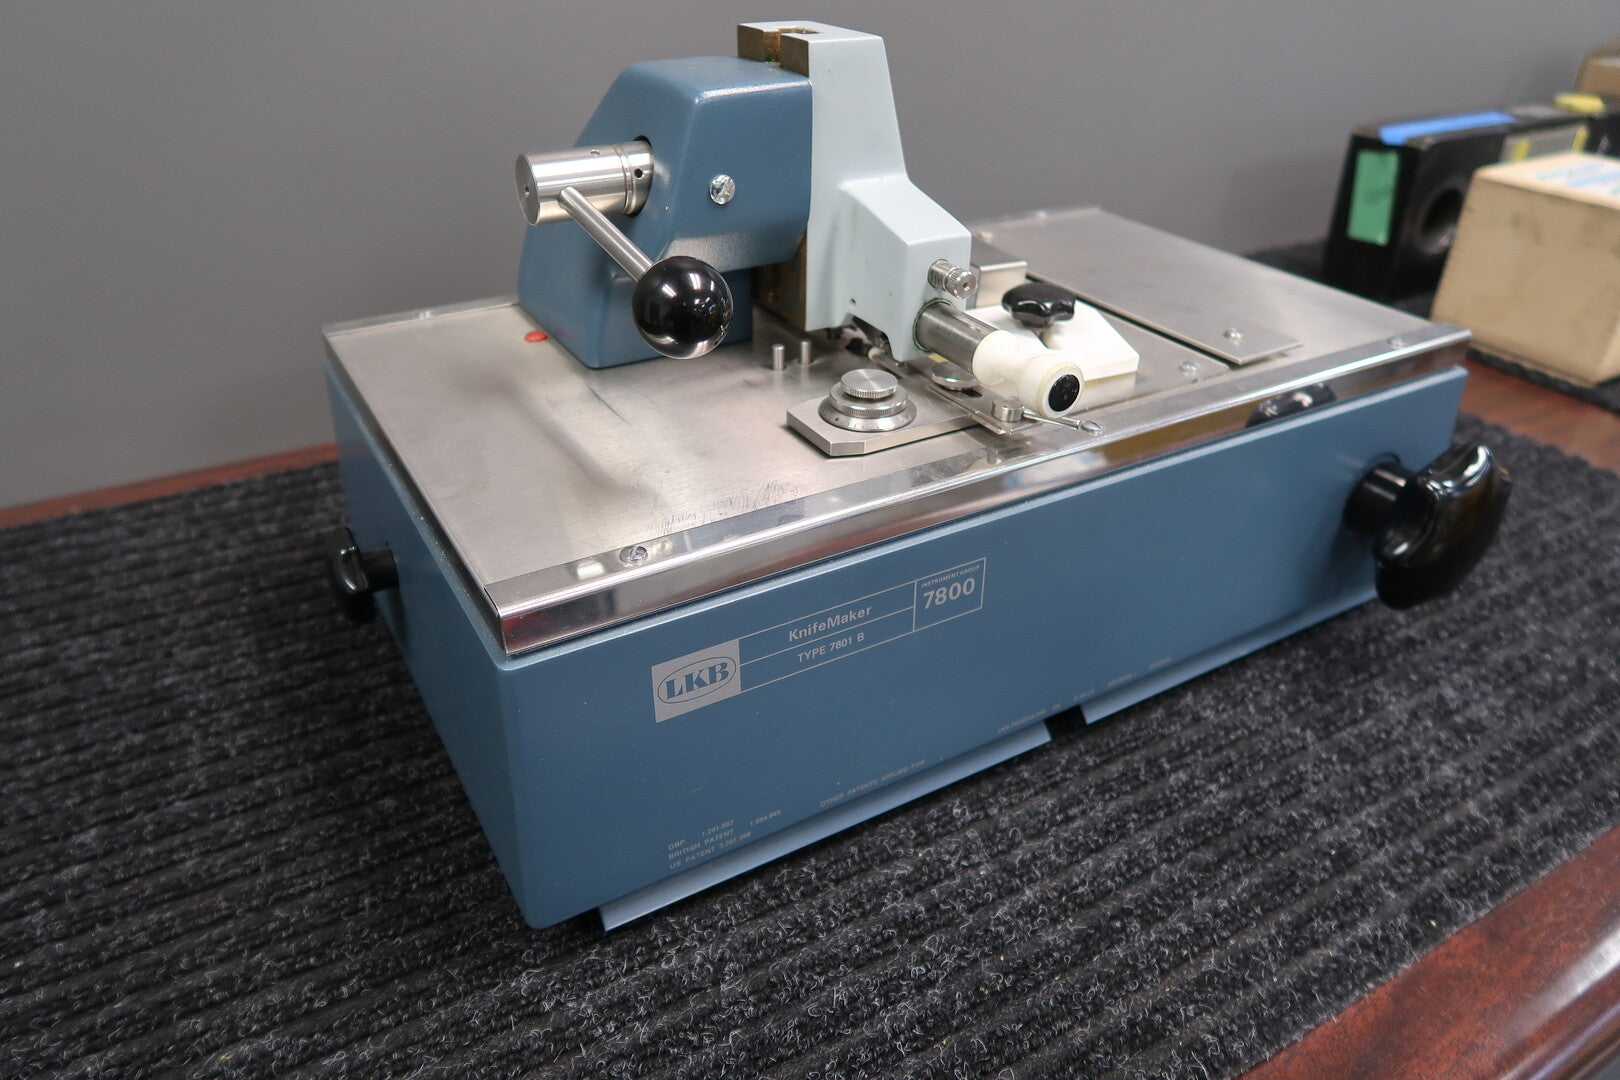 LKB Microtome Glass Knifemaker